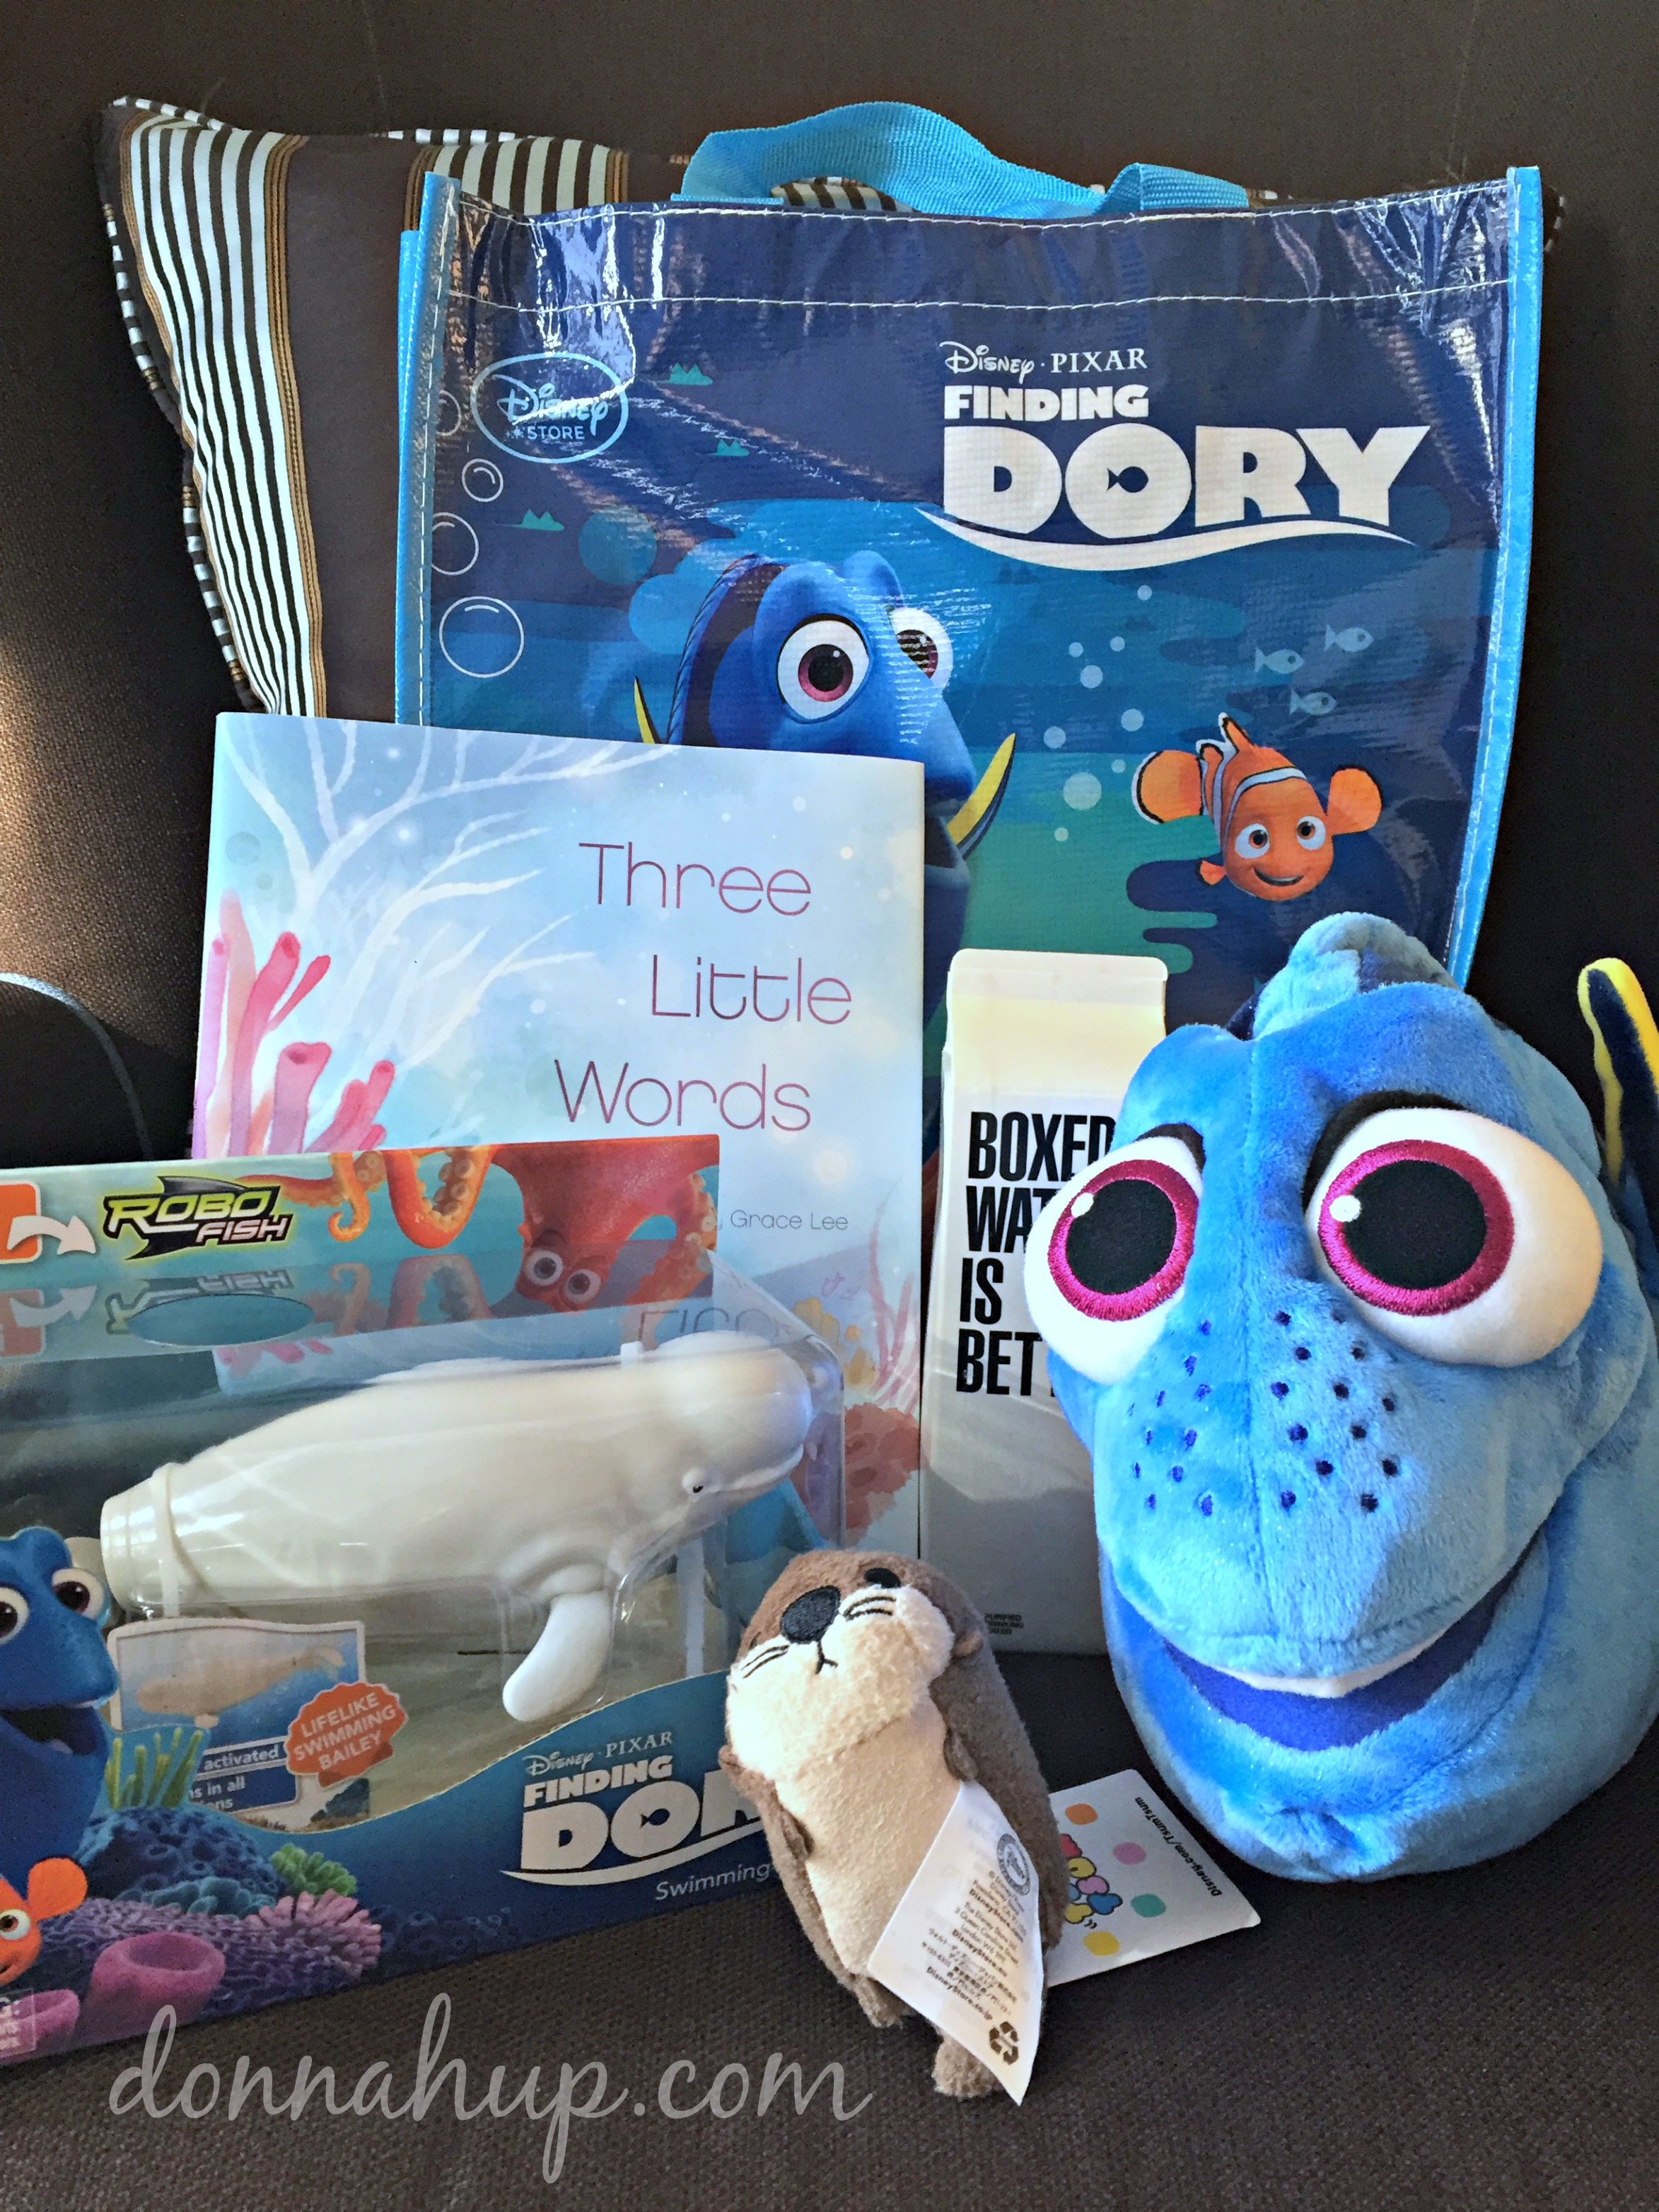 I'm Finding Dory Everywhere! #FindingDoryEvent